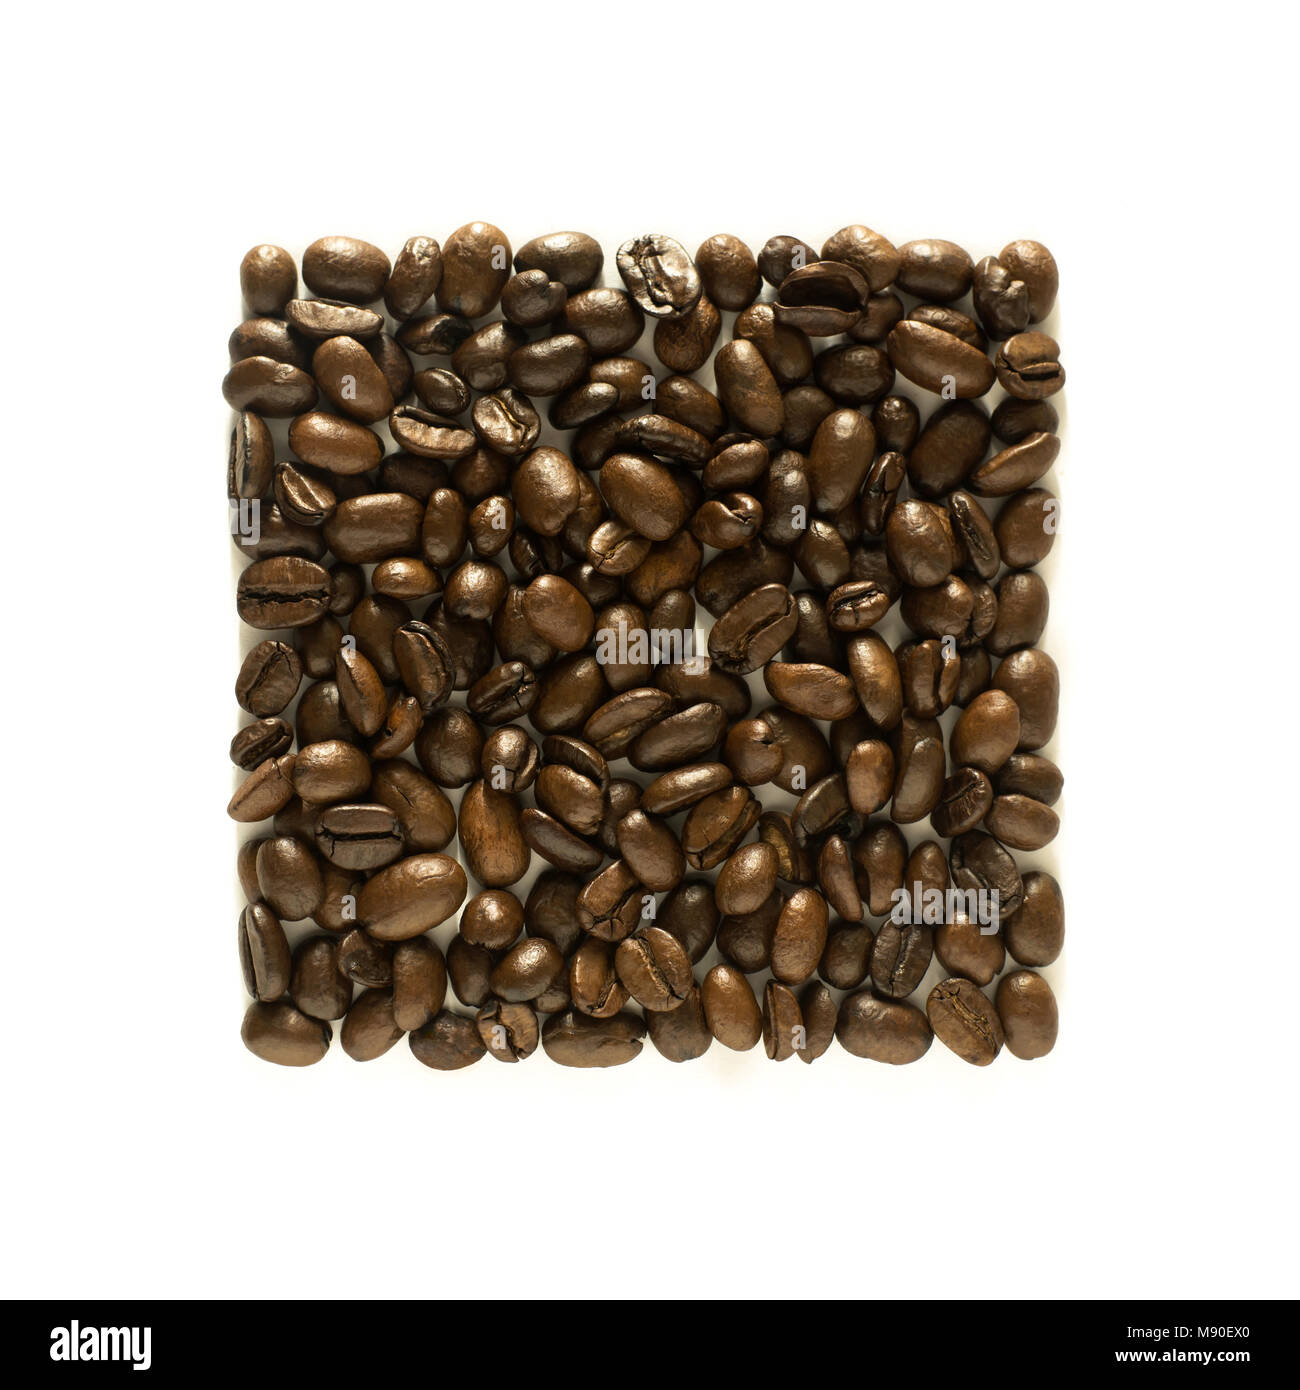 Neat square arrangement of coffee beans - isolated on white - Stock Image